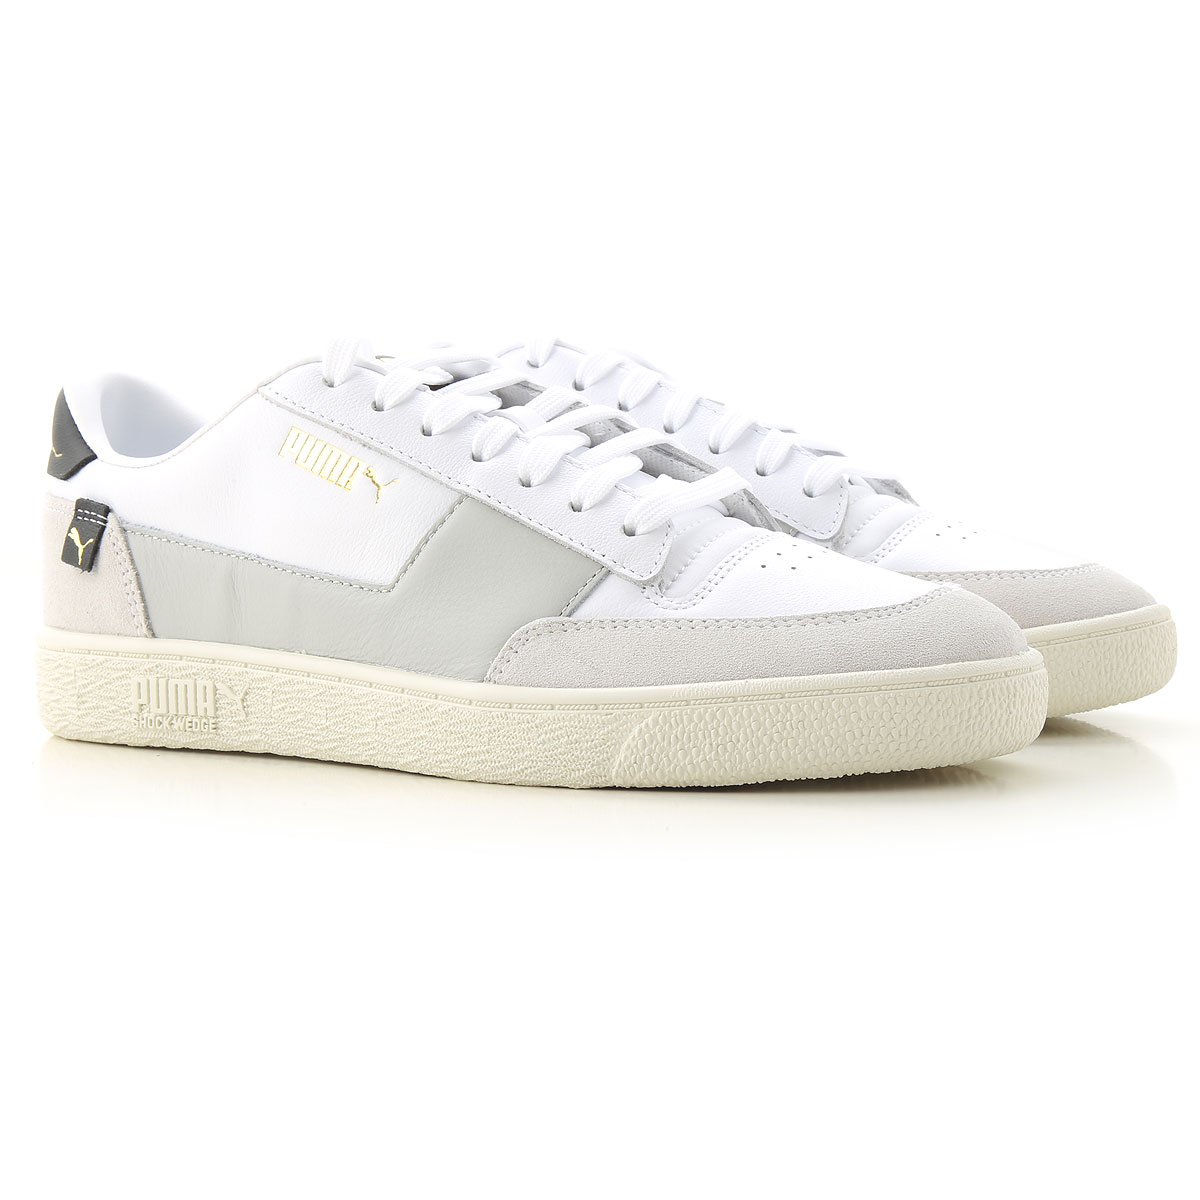 Puma Sneakers for Men On Sale, White, Leather, 2019, 10 7.5 8.5 9